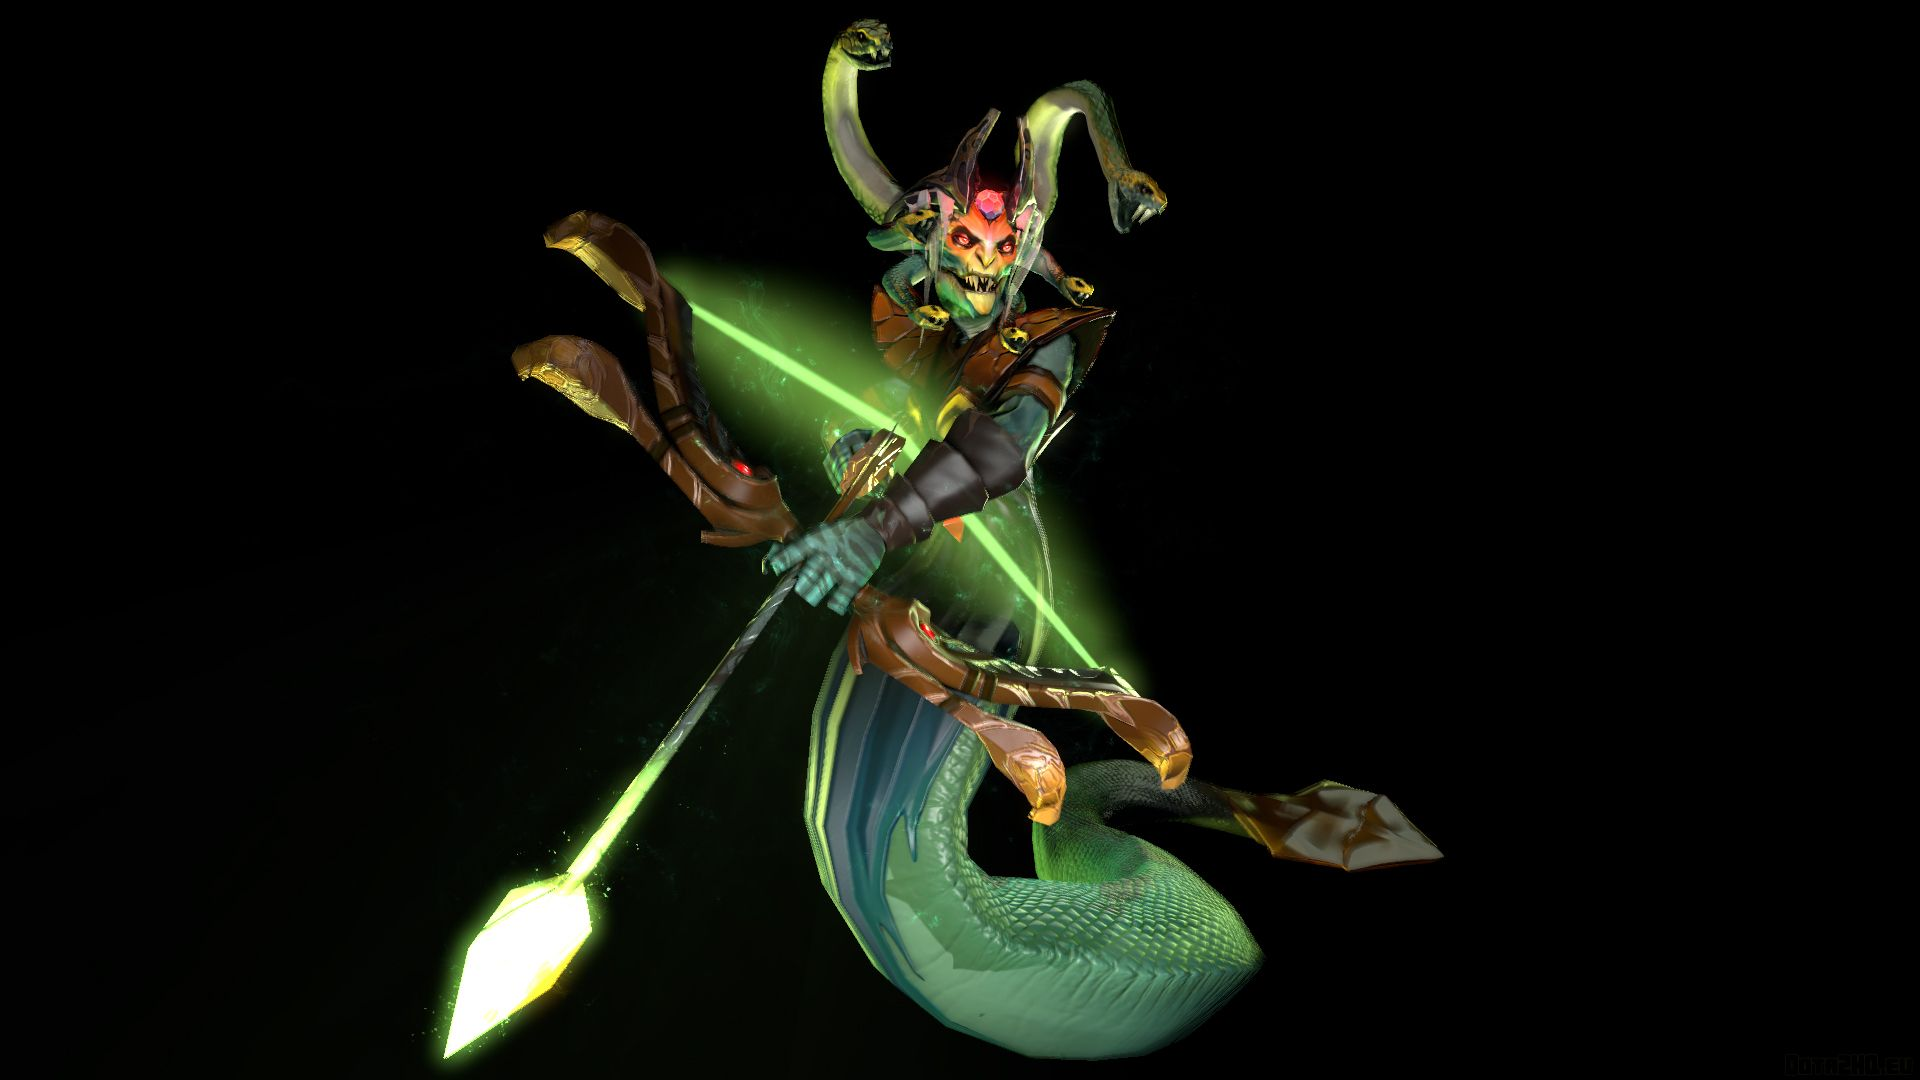 Stunning Medusa 3d Art Dota 2 69 HD Anime Wallpaper